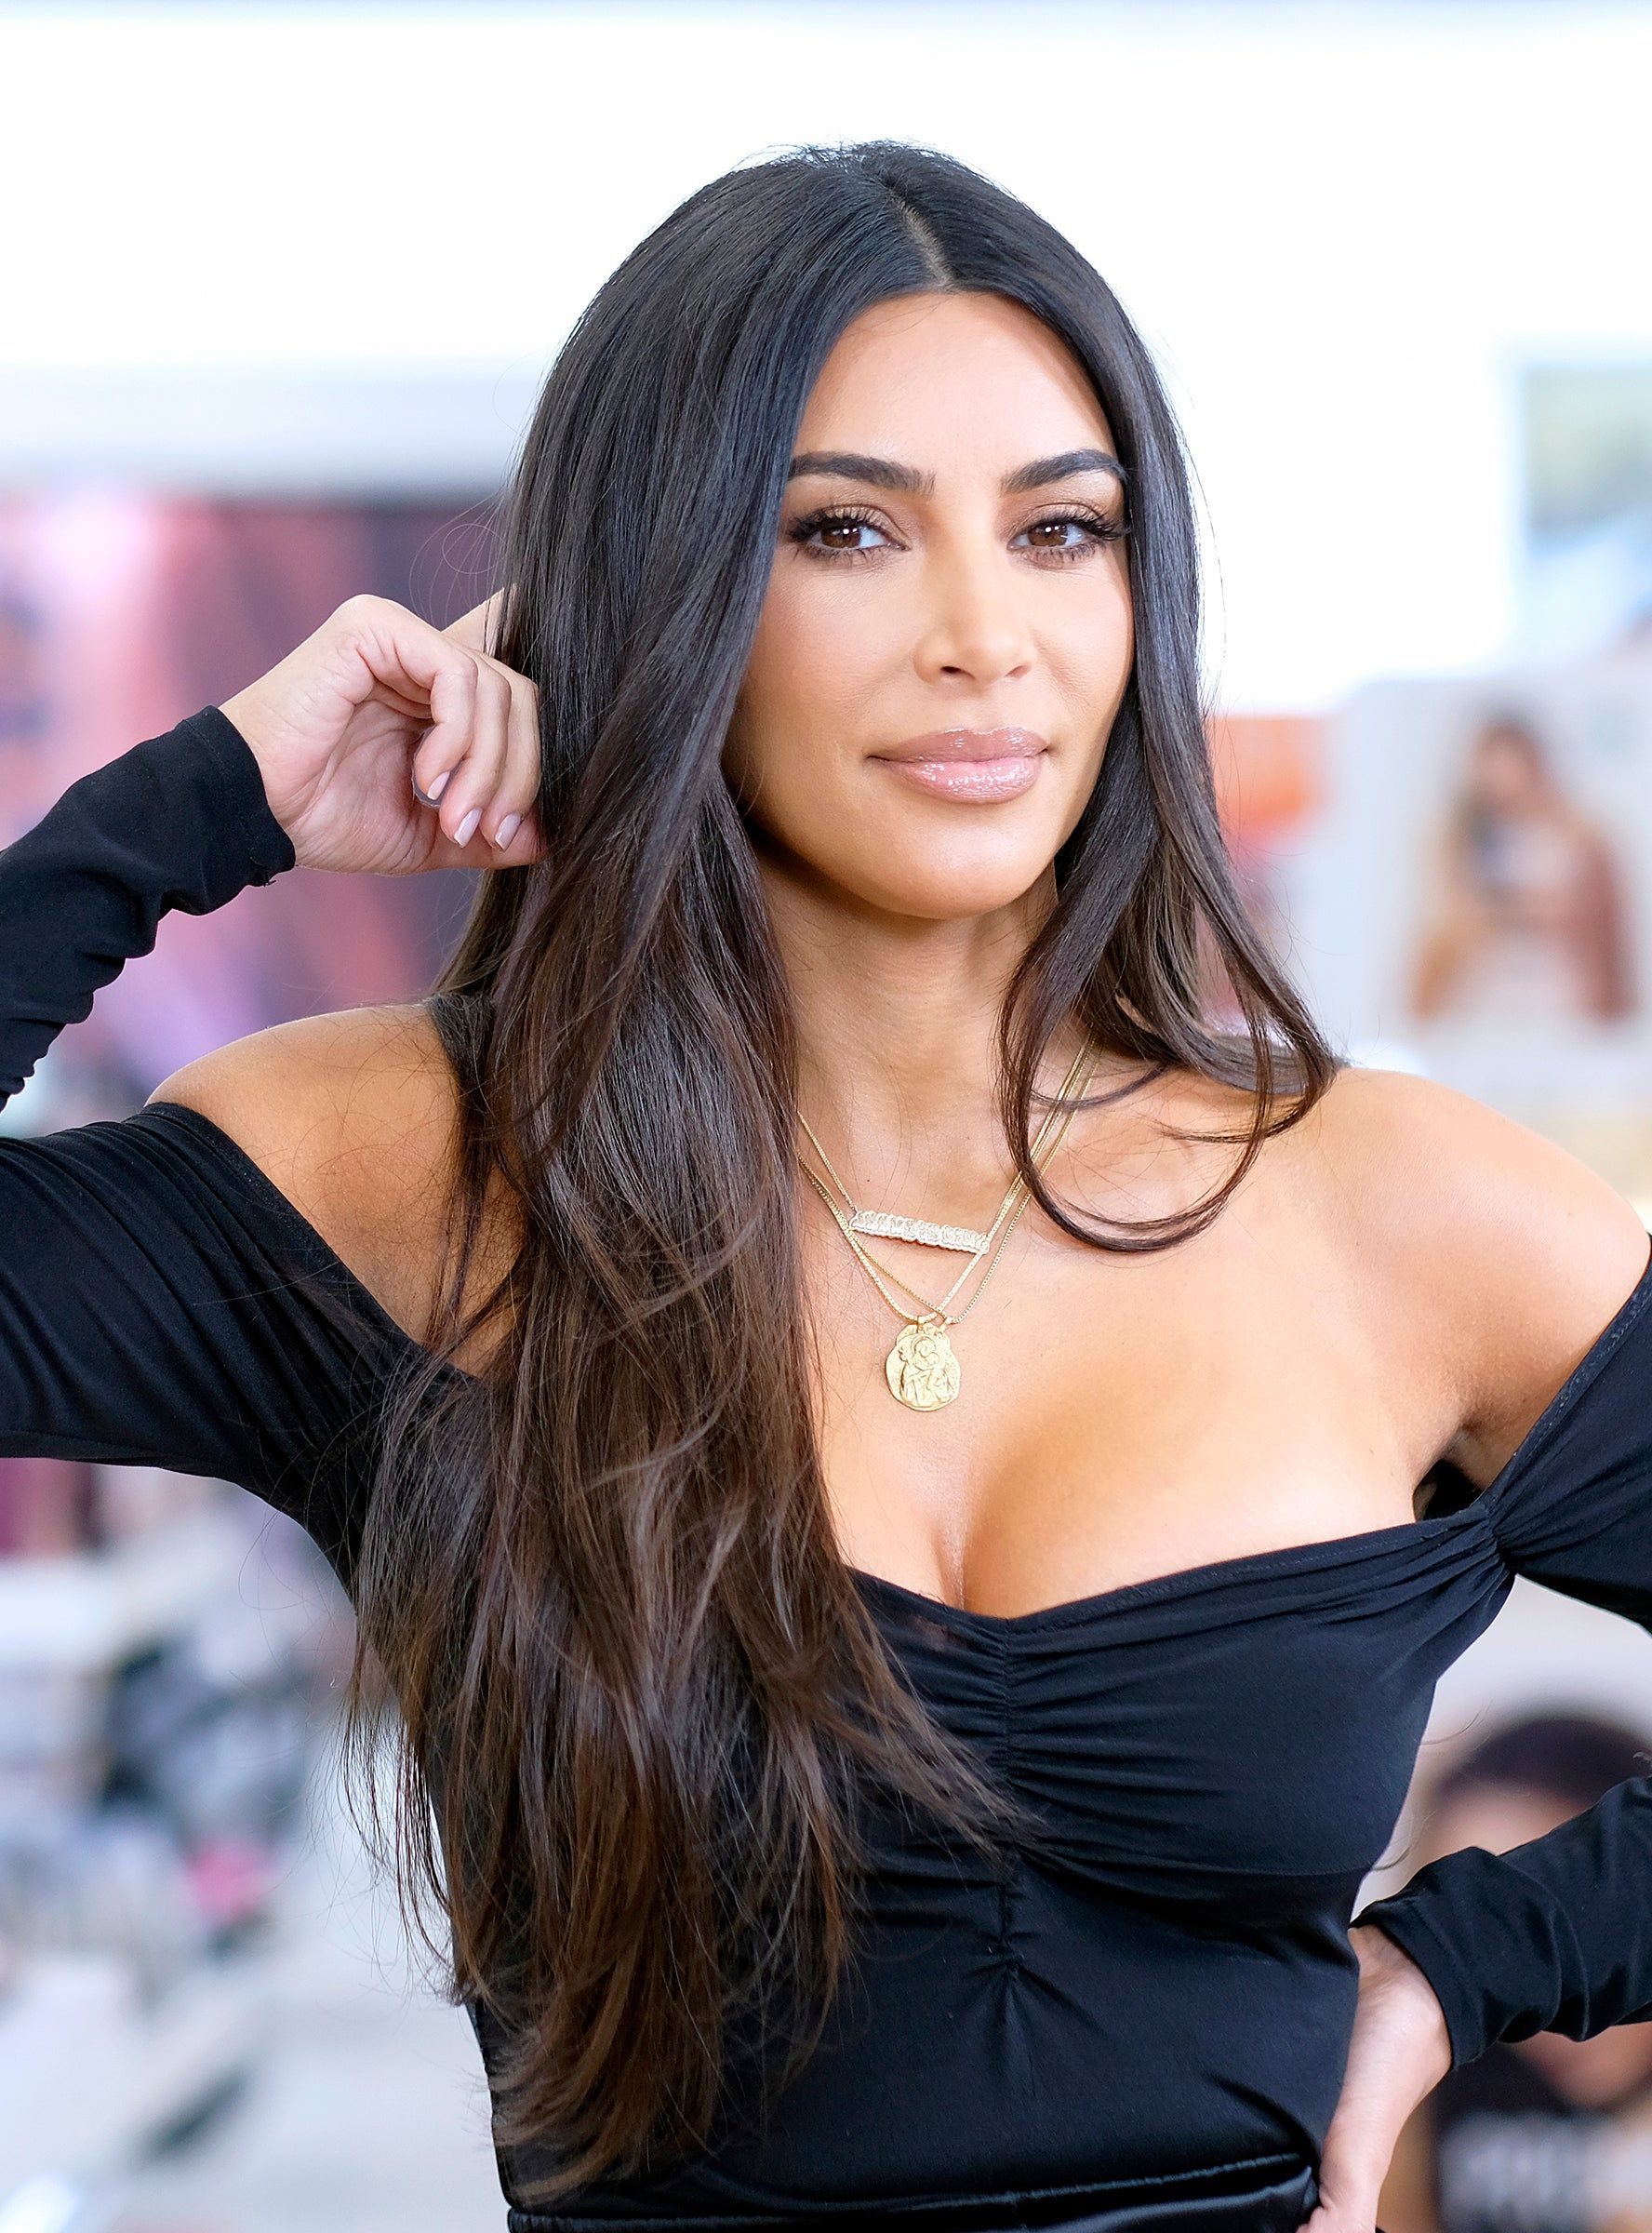 Is Skin Care The Next Stage In Kim Kardashian's Beauty Empire?